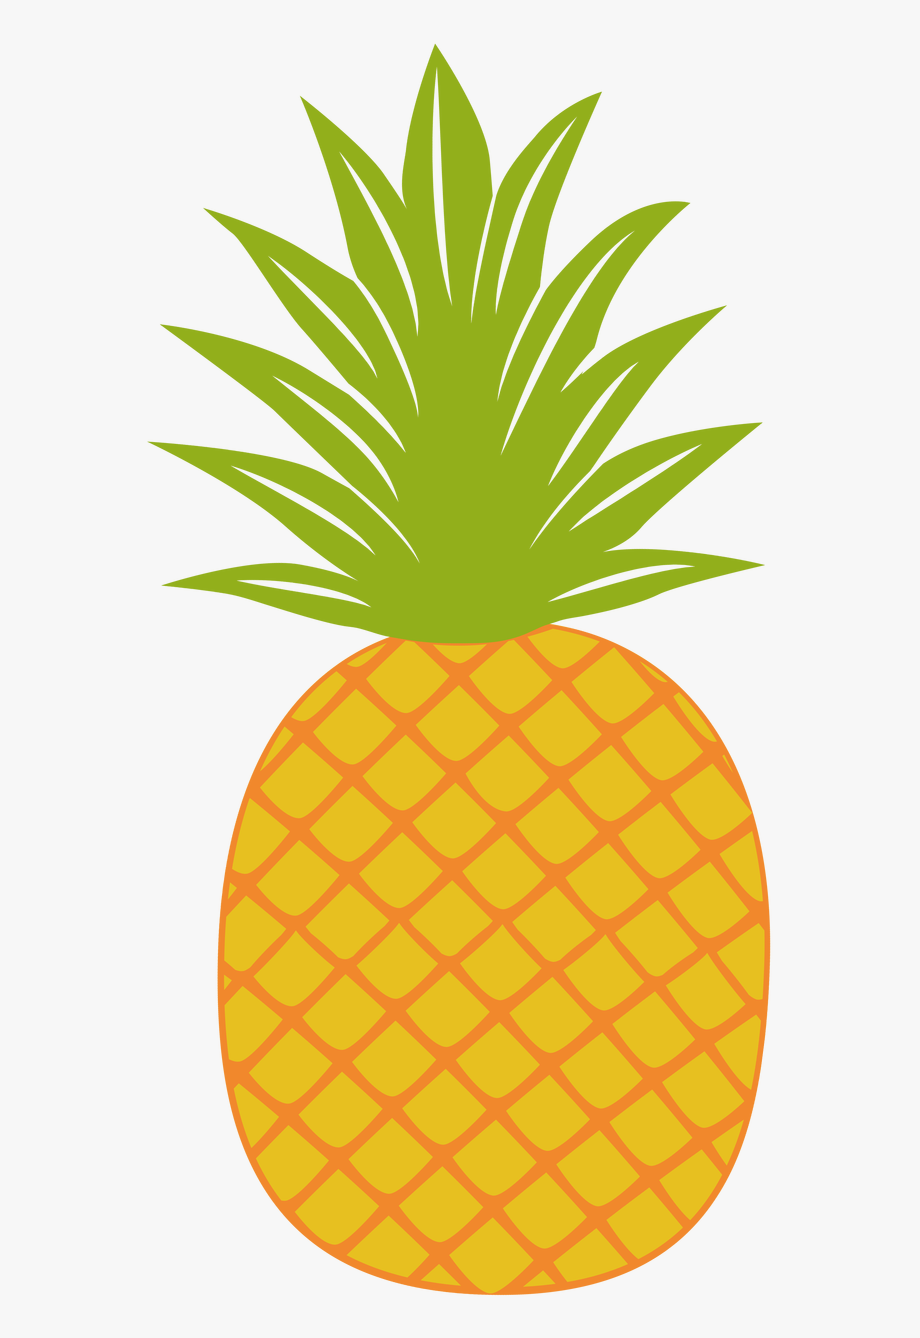 Gold pineapple. Clipart fancy image